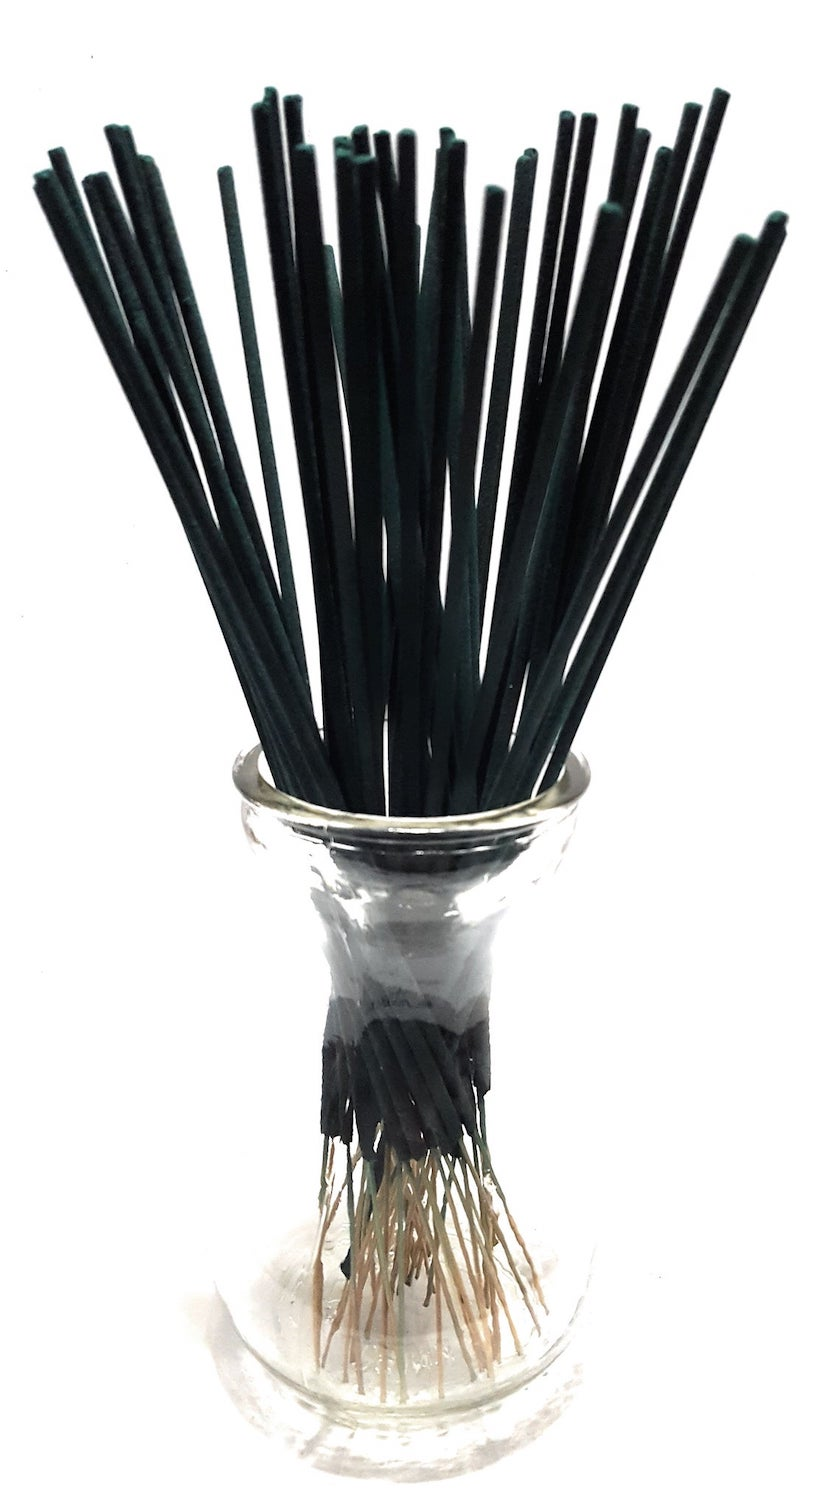 Mosquito incense sticks in glass holder